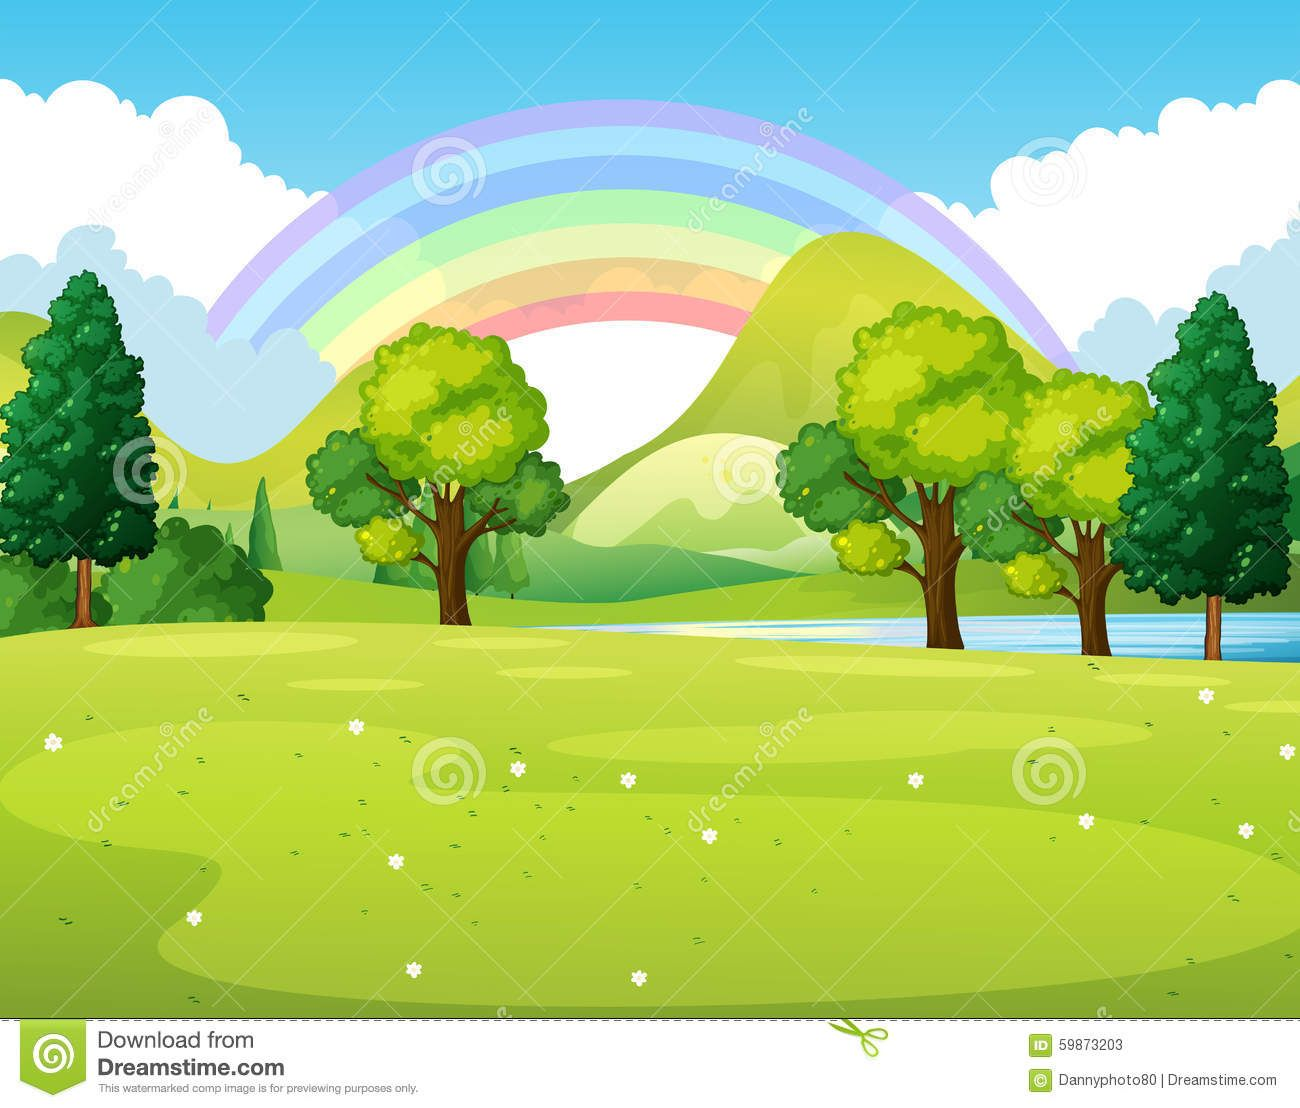 Illustration About Nature Scene Of A Park With Rainbow Illustration Illustration Of Garden Drawing Cloud 5987320 Nature Scenes Drawing Scenery Nature Kids